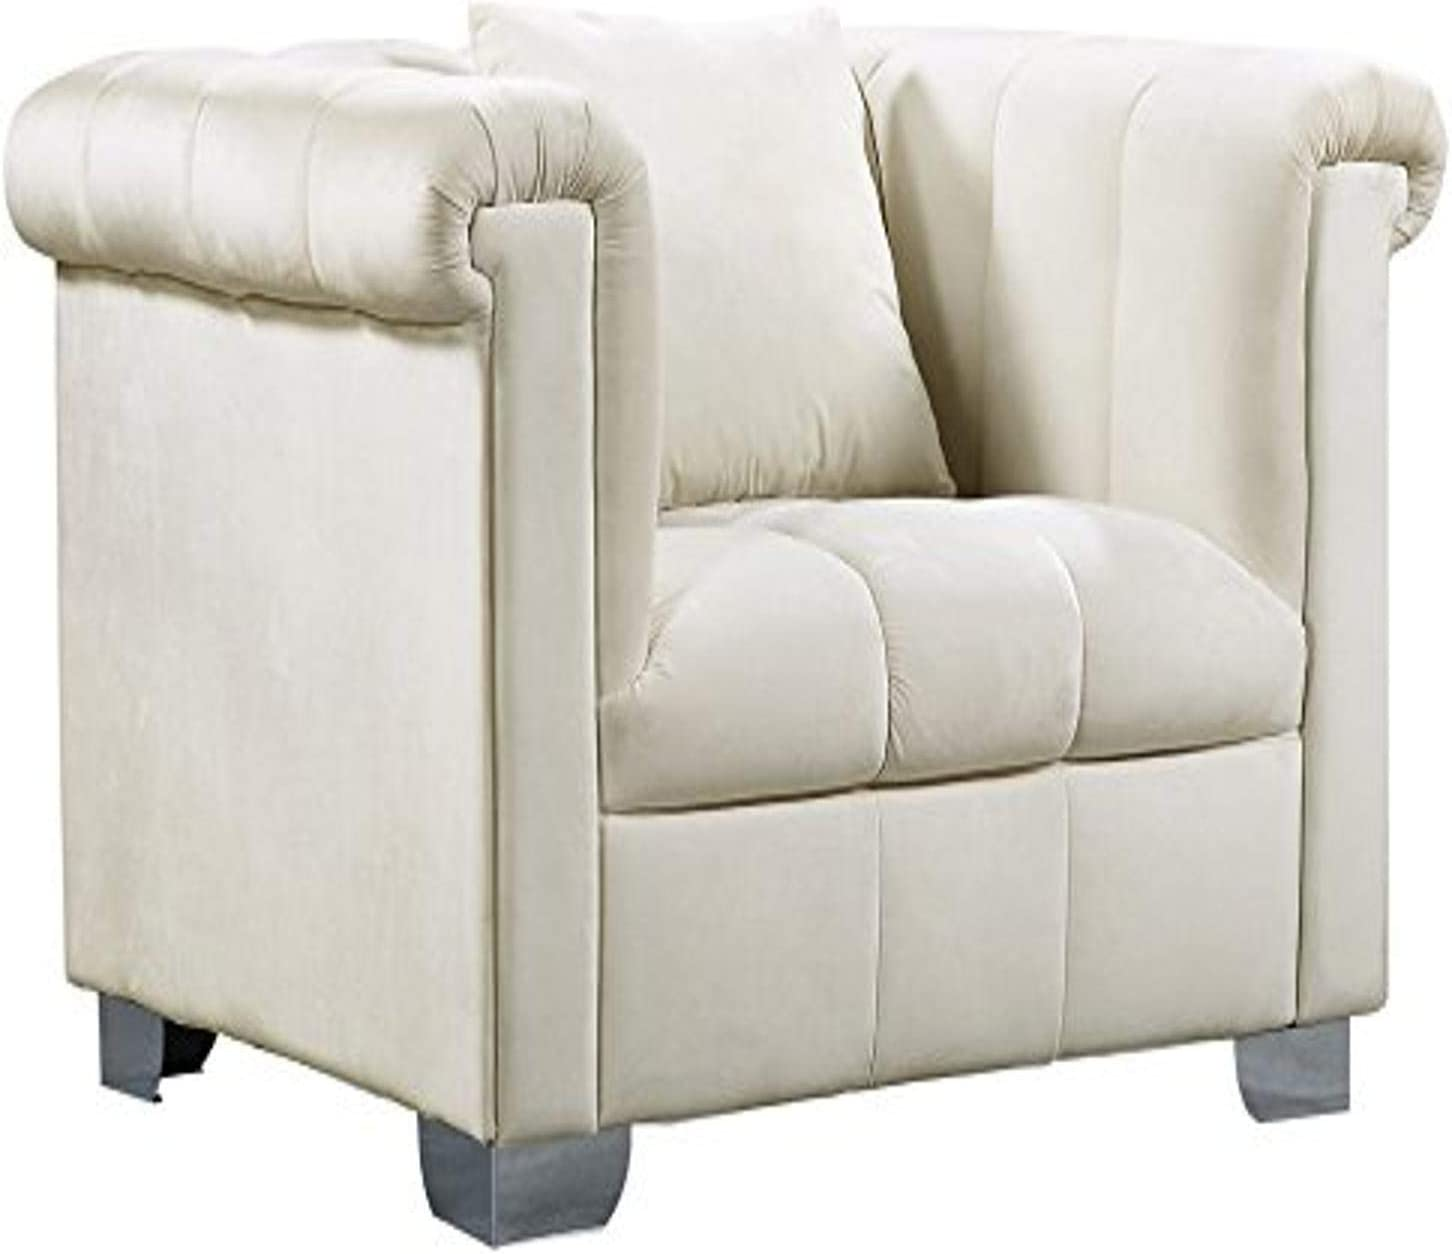 """Meridian Furniture Kayla Collection Modern   Contemporary Deep Channel Tufted Velvet Upholstered Chair with Custom Chrome Legs, 45.5"""" W x 37"""" D x 31"""" H, Cream"""